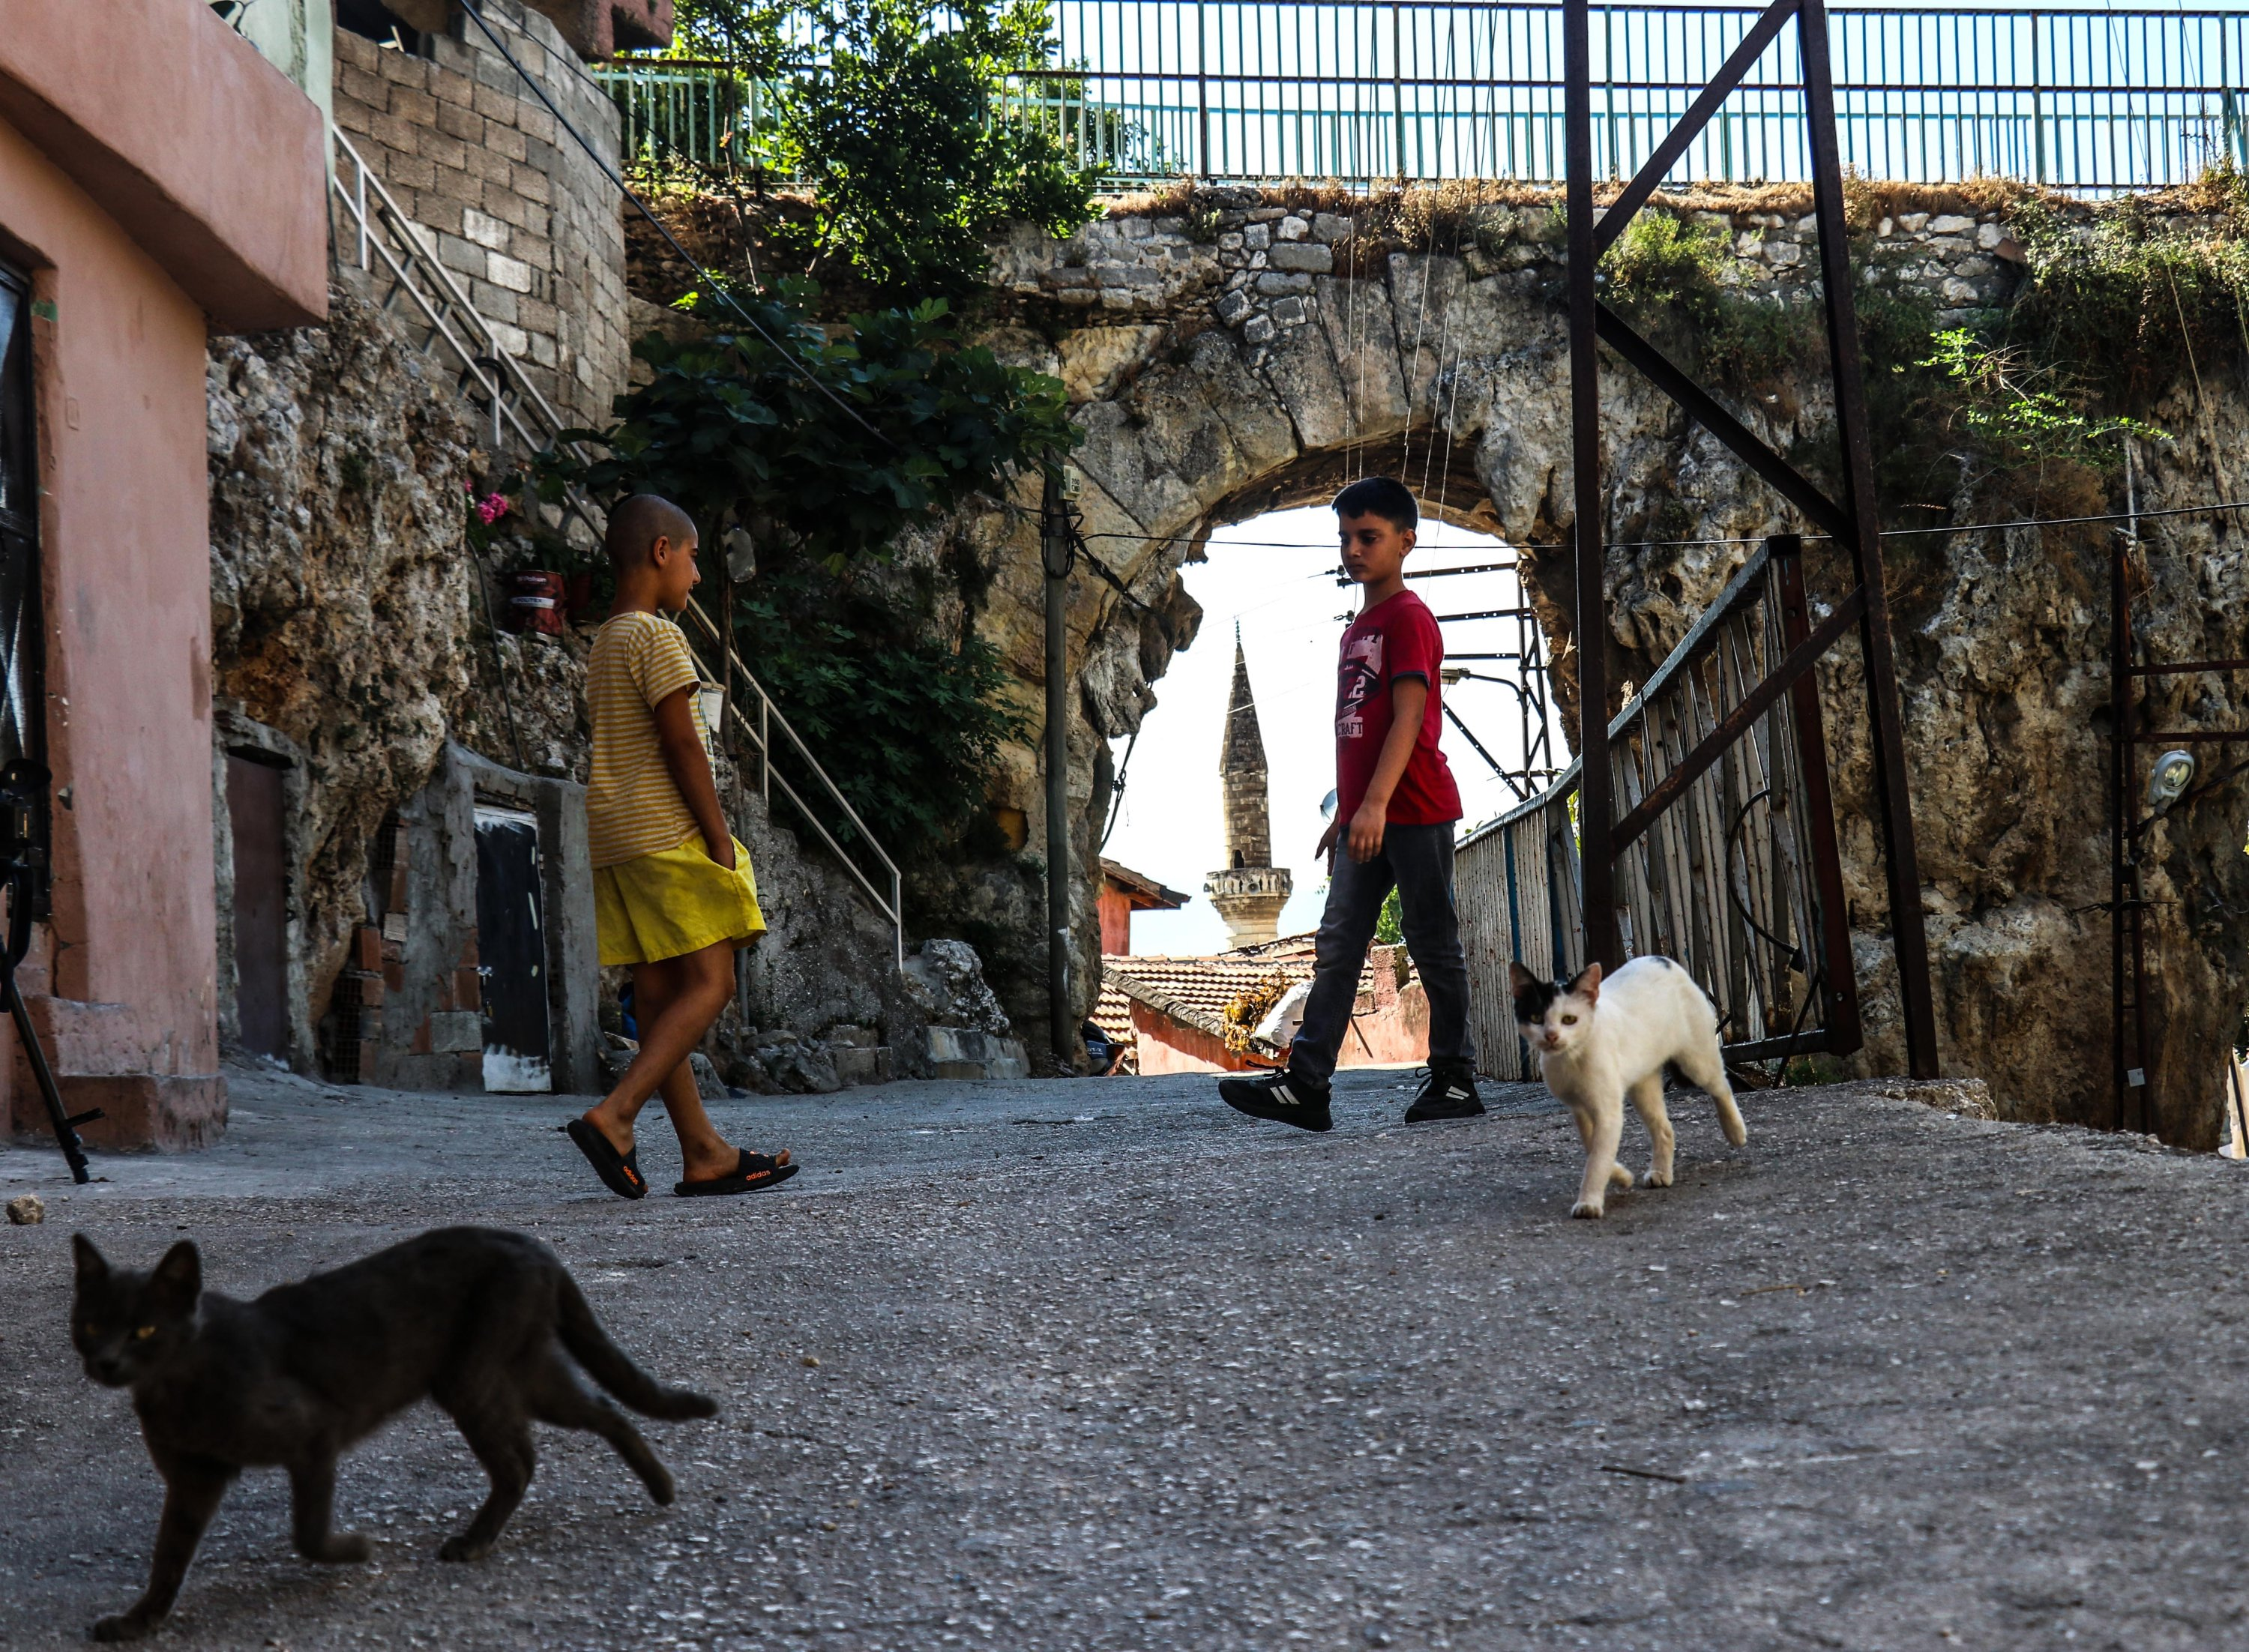 Cats and kids play near the arches of an aqueduct in Hatay, Turkey, July 27, 2021. (AA Photo).